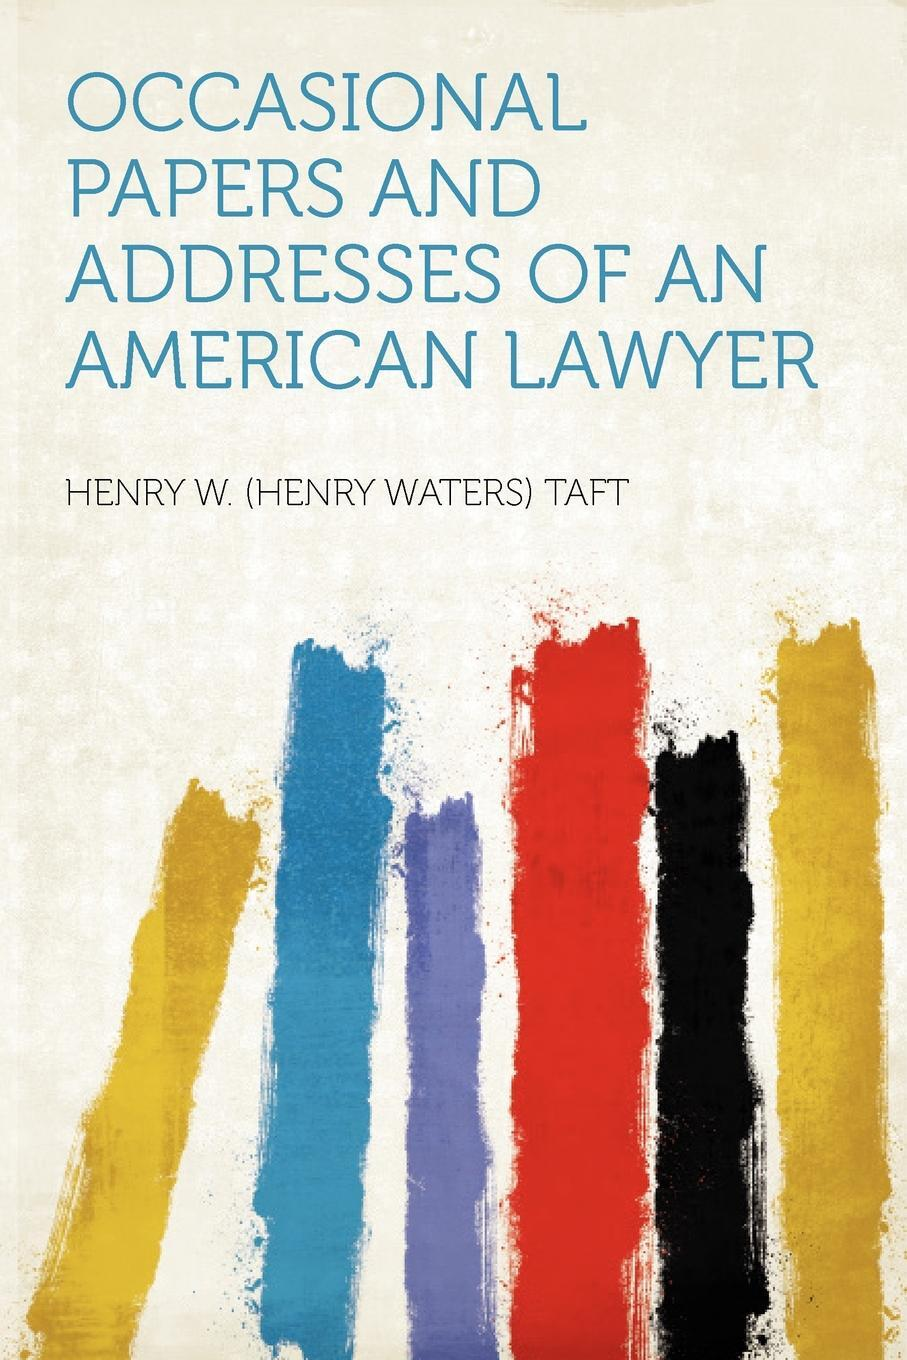 Henry W. (Henry Waters) Taft. Occasional Papers and Addresses of an American Lawyer